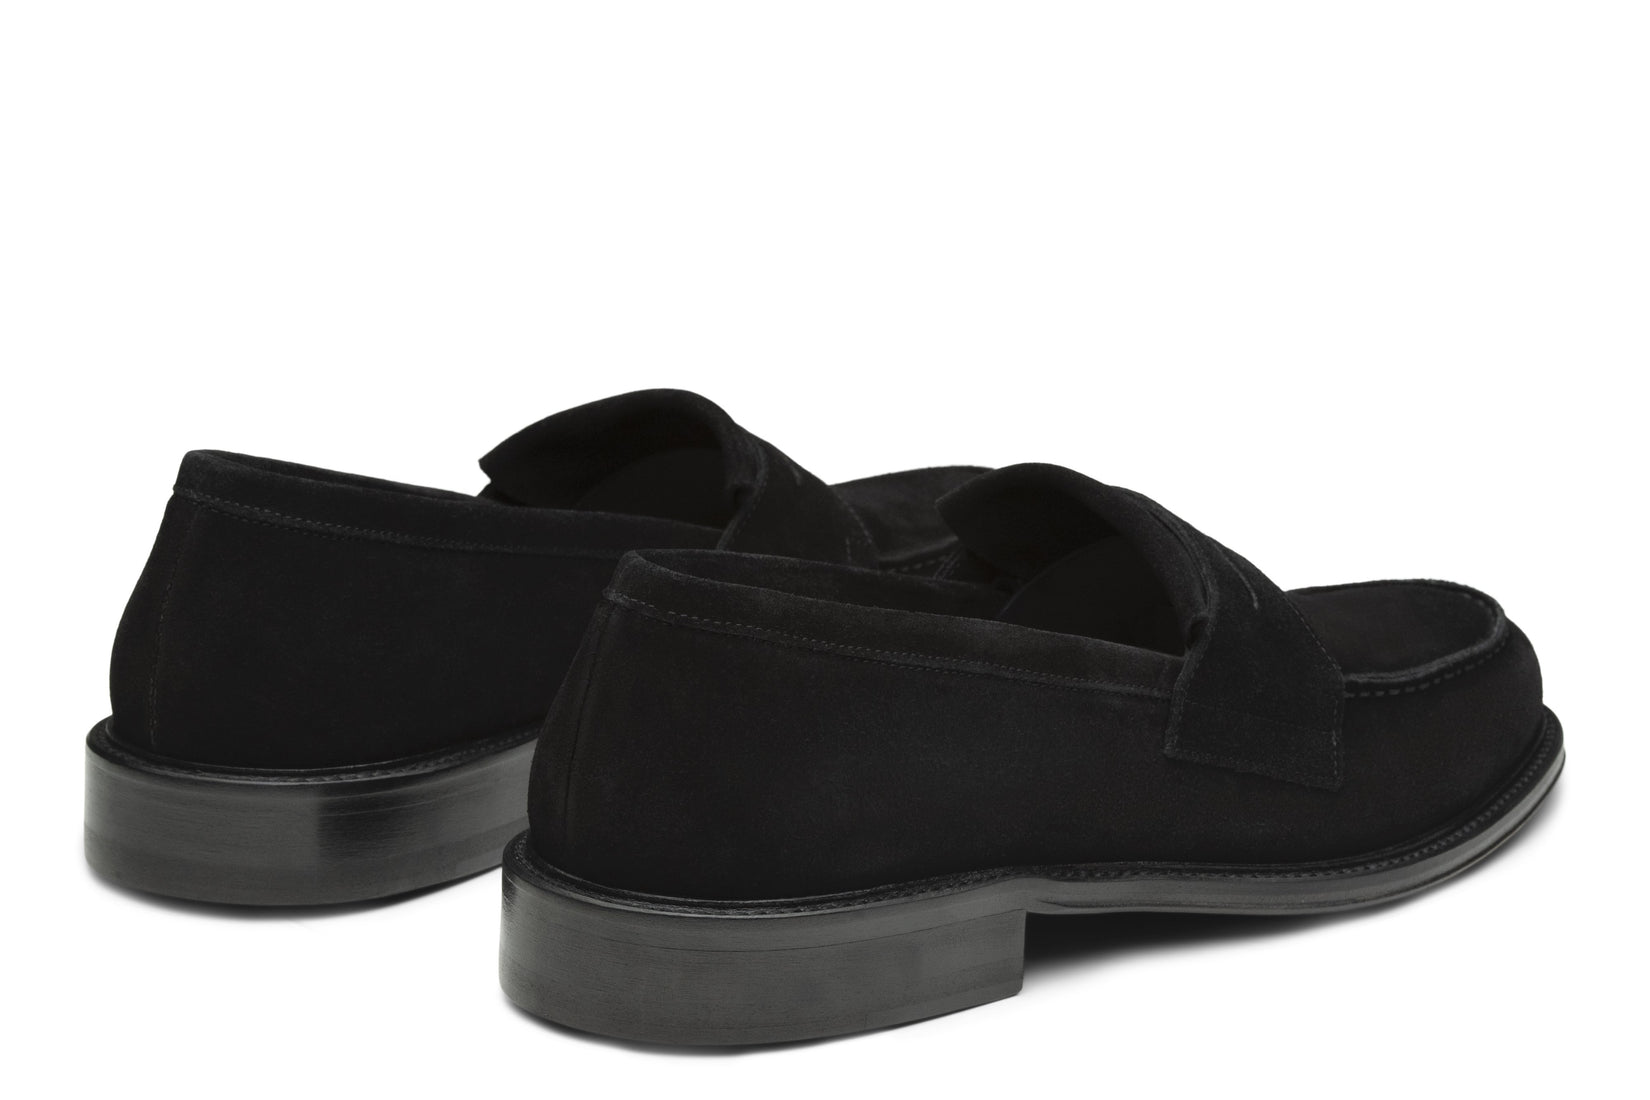 Monday Penny Loafer in Black